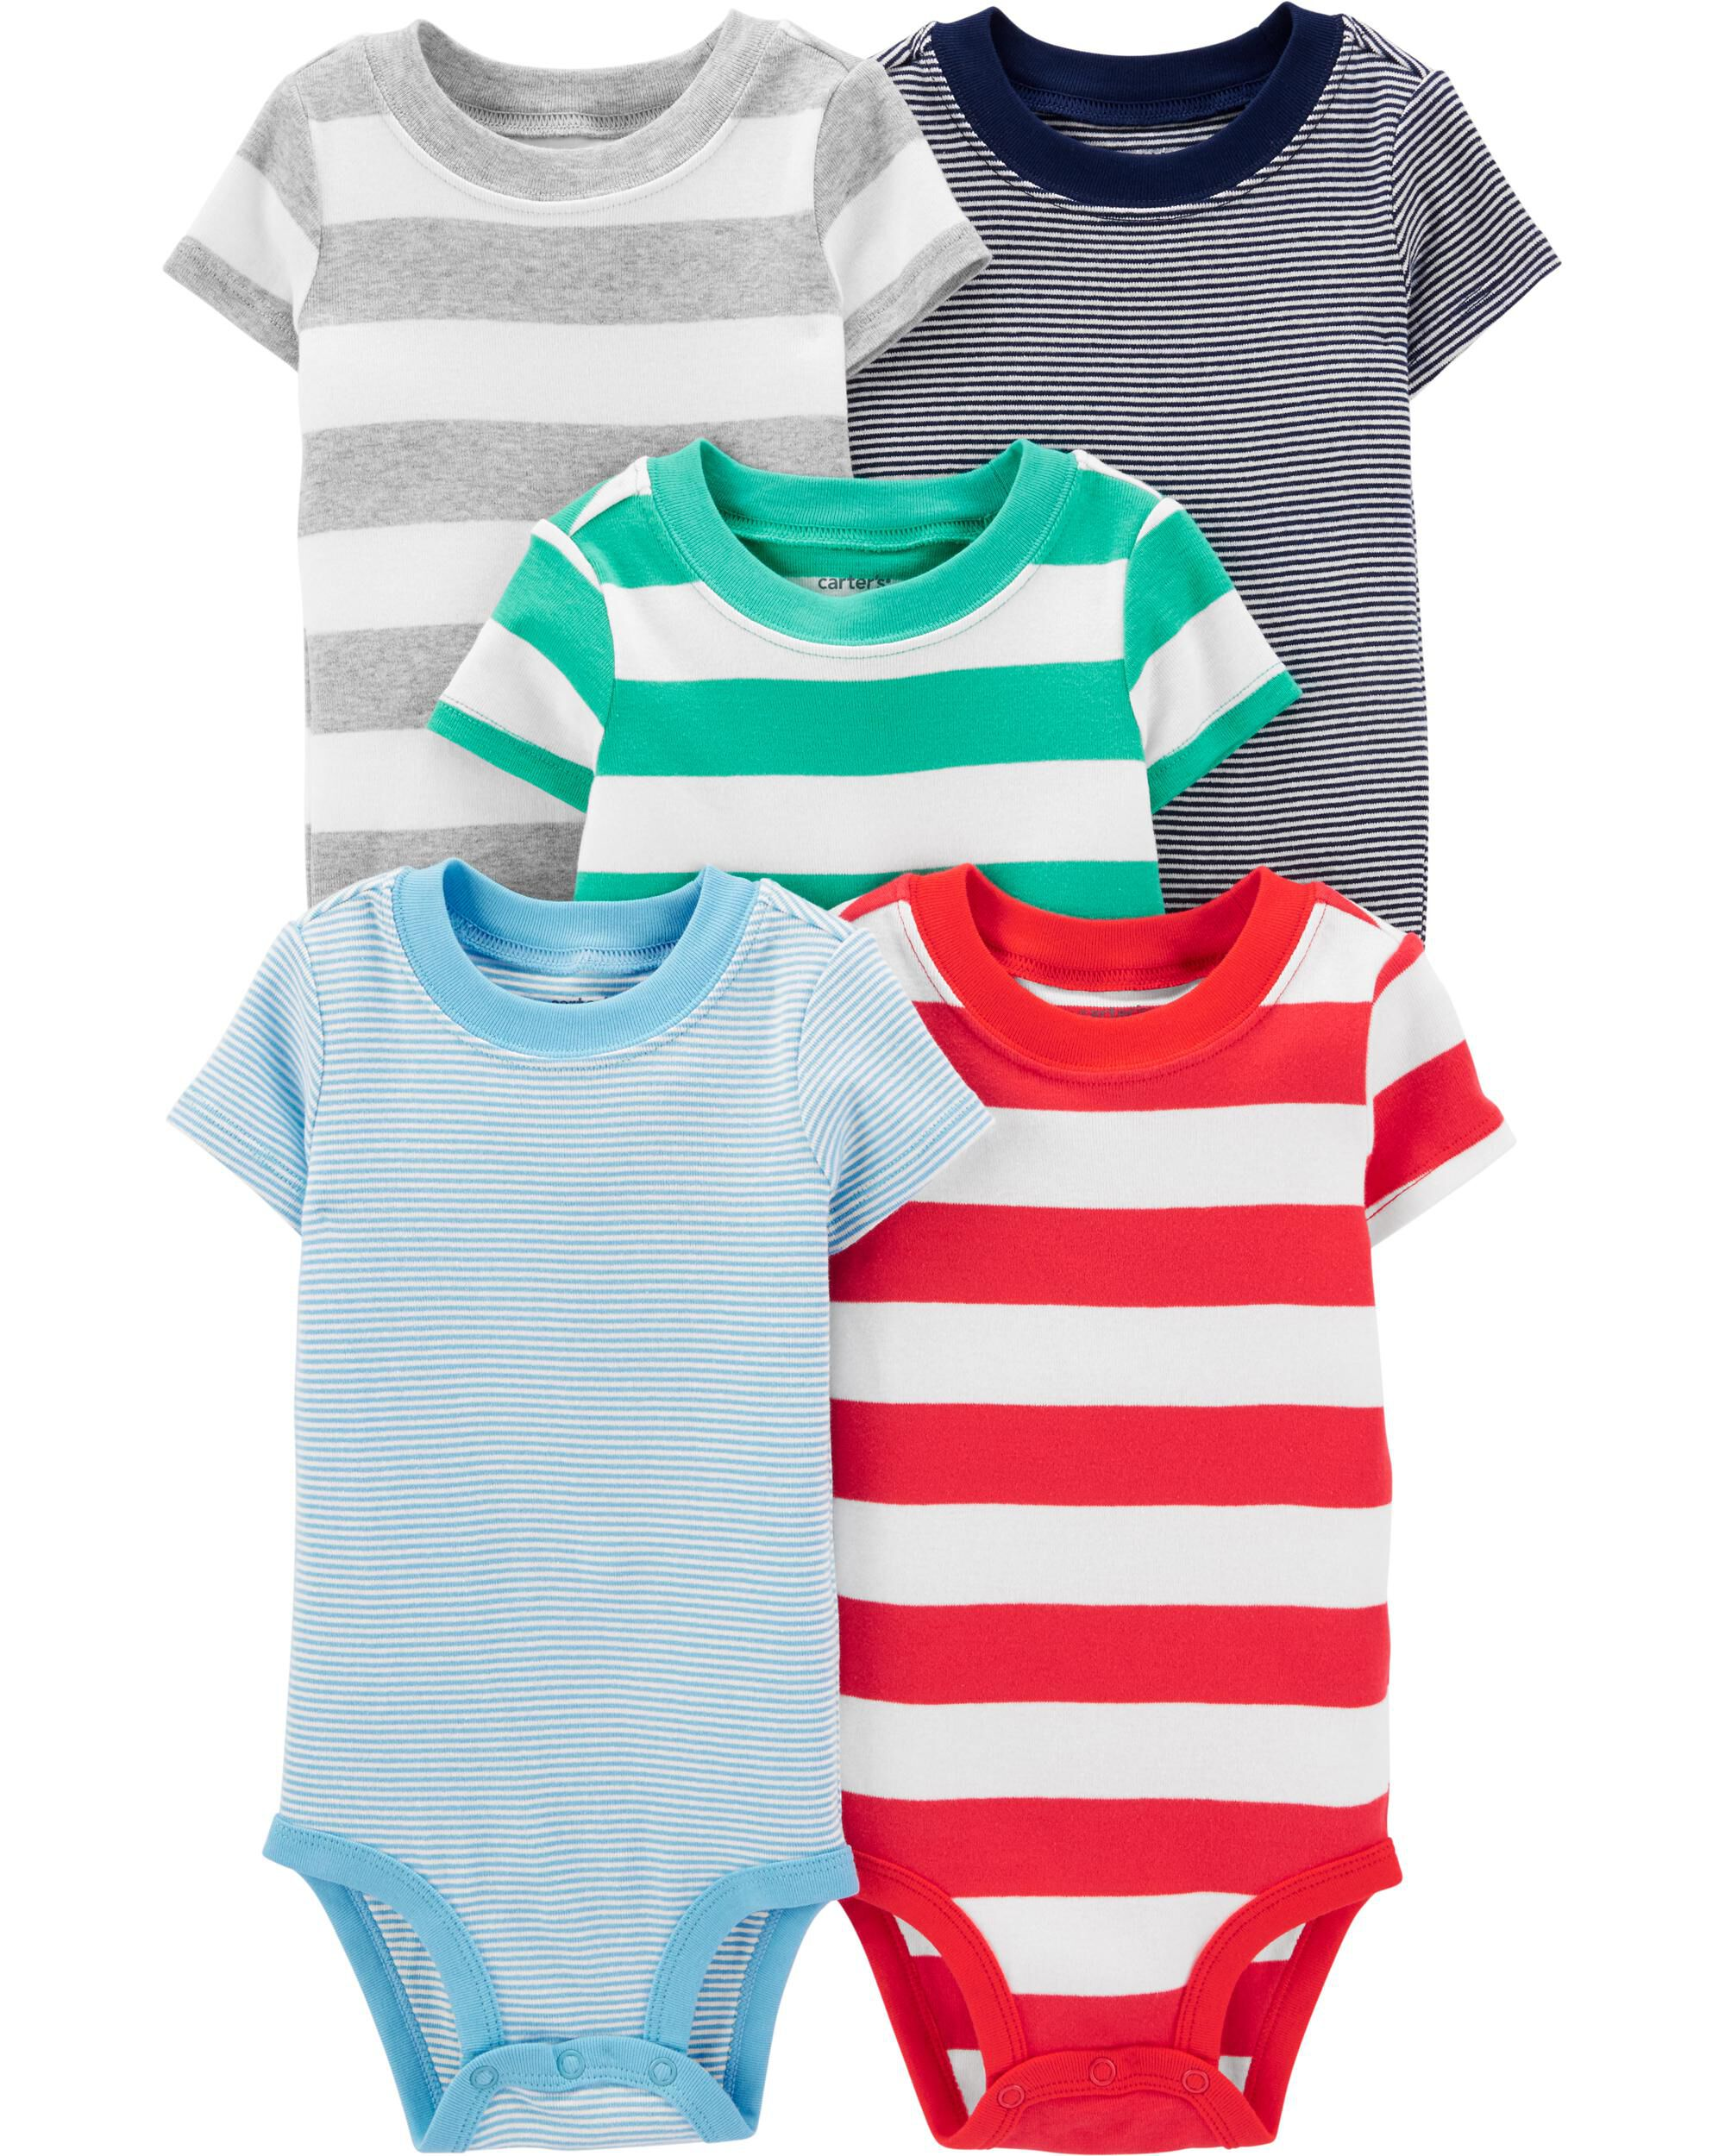 New Carter/'s Boys 3 Pack Henley Thermal Red Penguin Bodysuits Tops NWT 3 12m 24m